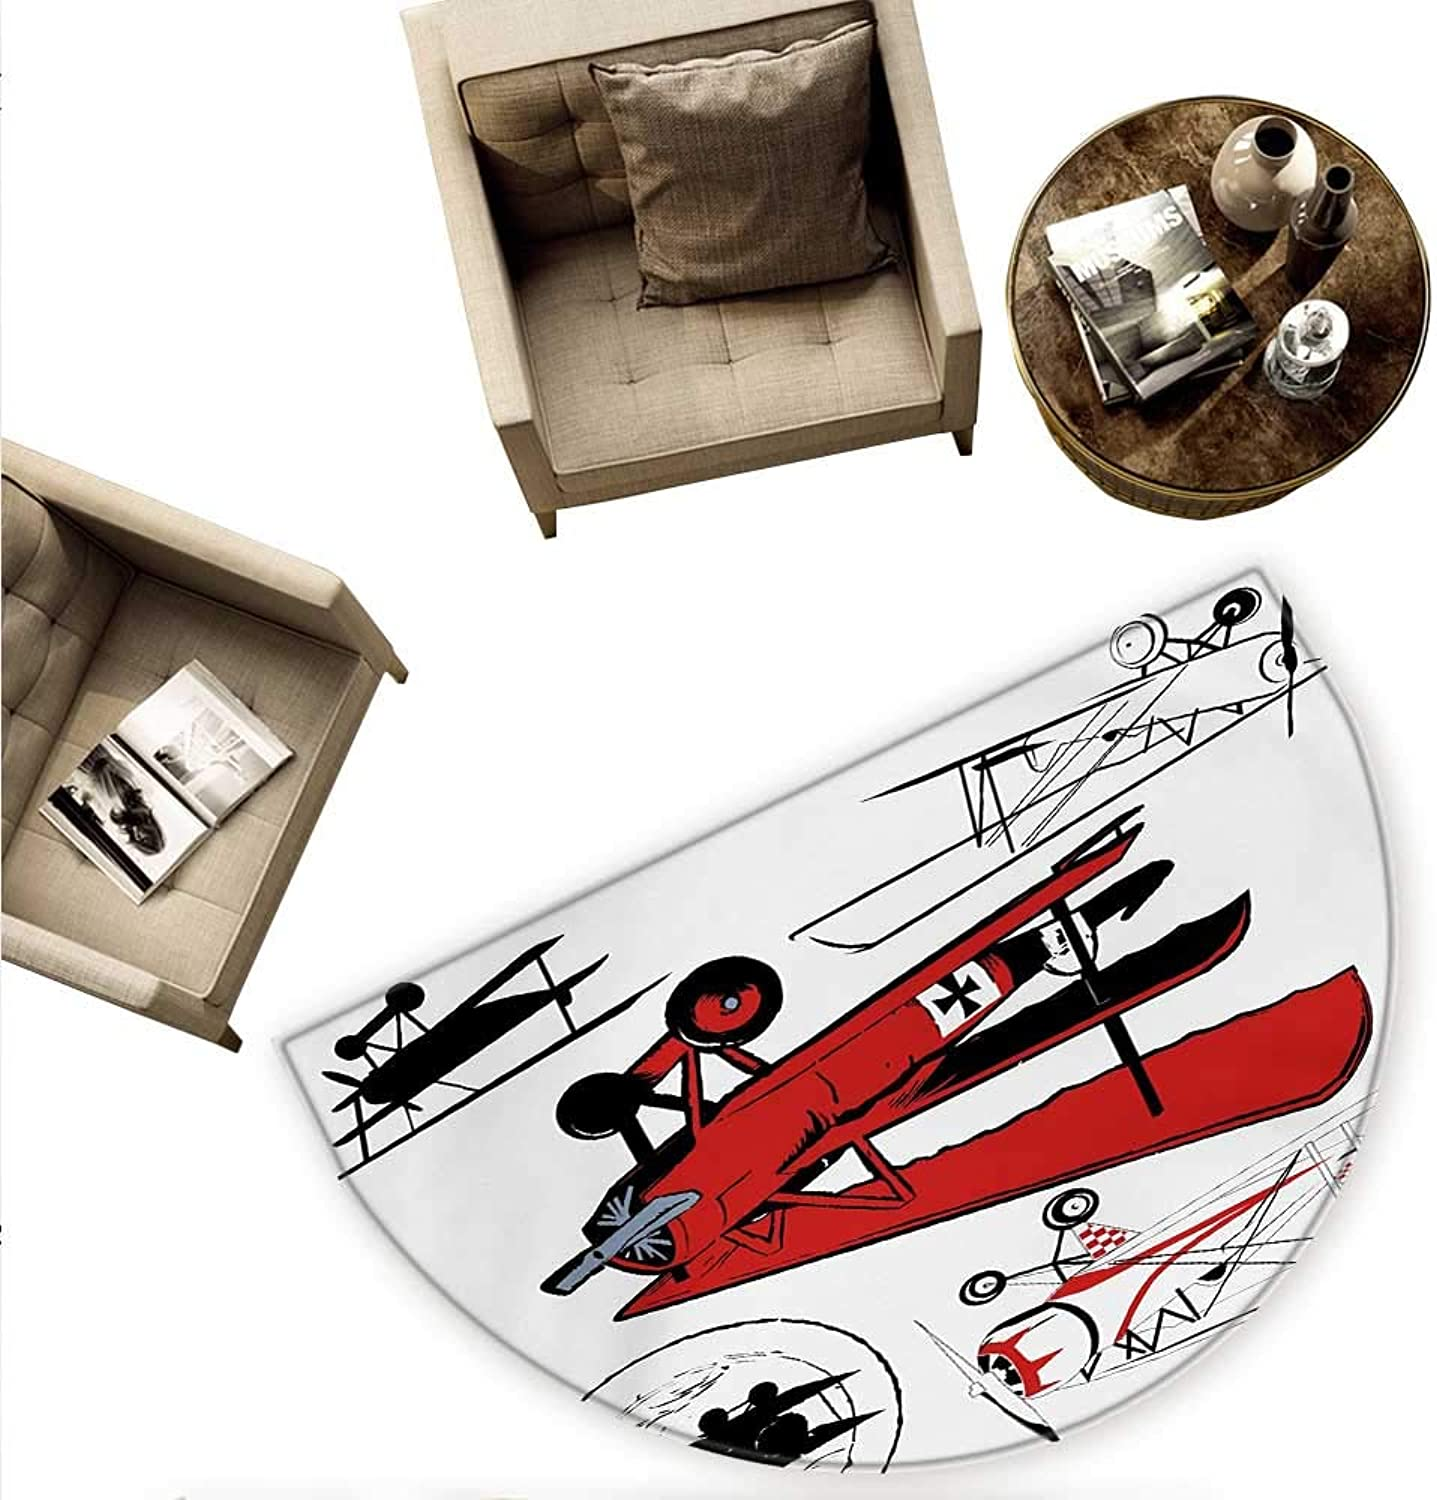 Vintage Airplane Semicircular Cushion Collection of Various Biplanes Nostalgic Antique Silhouettes Print Entry Door Mat H 55.1  xD 82.6  Red White Black